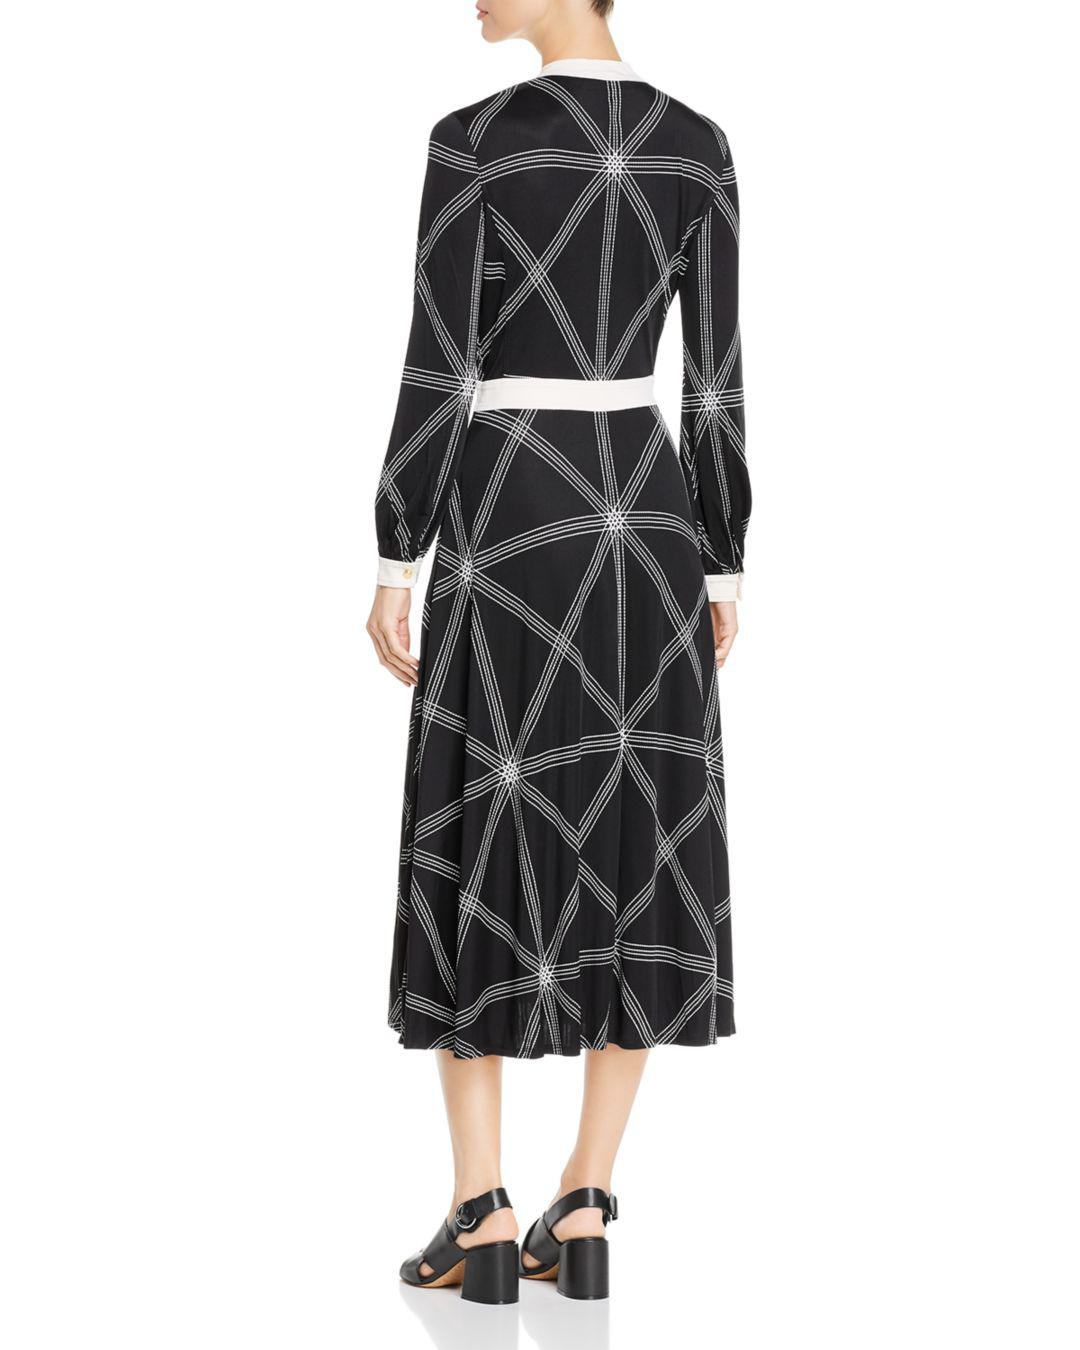 64f9016b568a3 Lyst - Tory Burch Anja Printed Midi Dress in Black - Save 62%